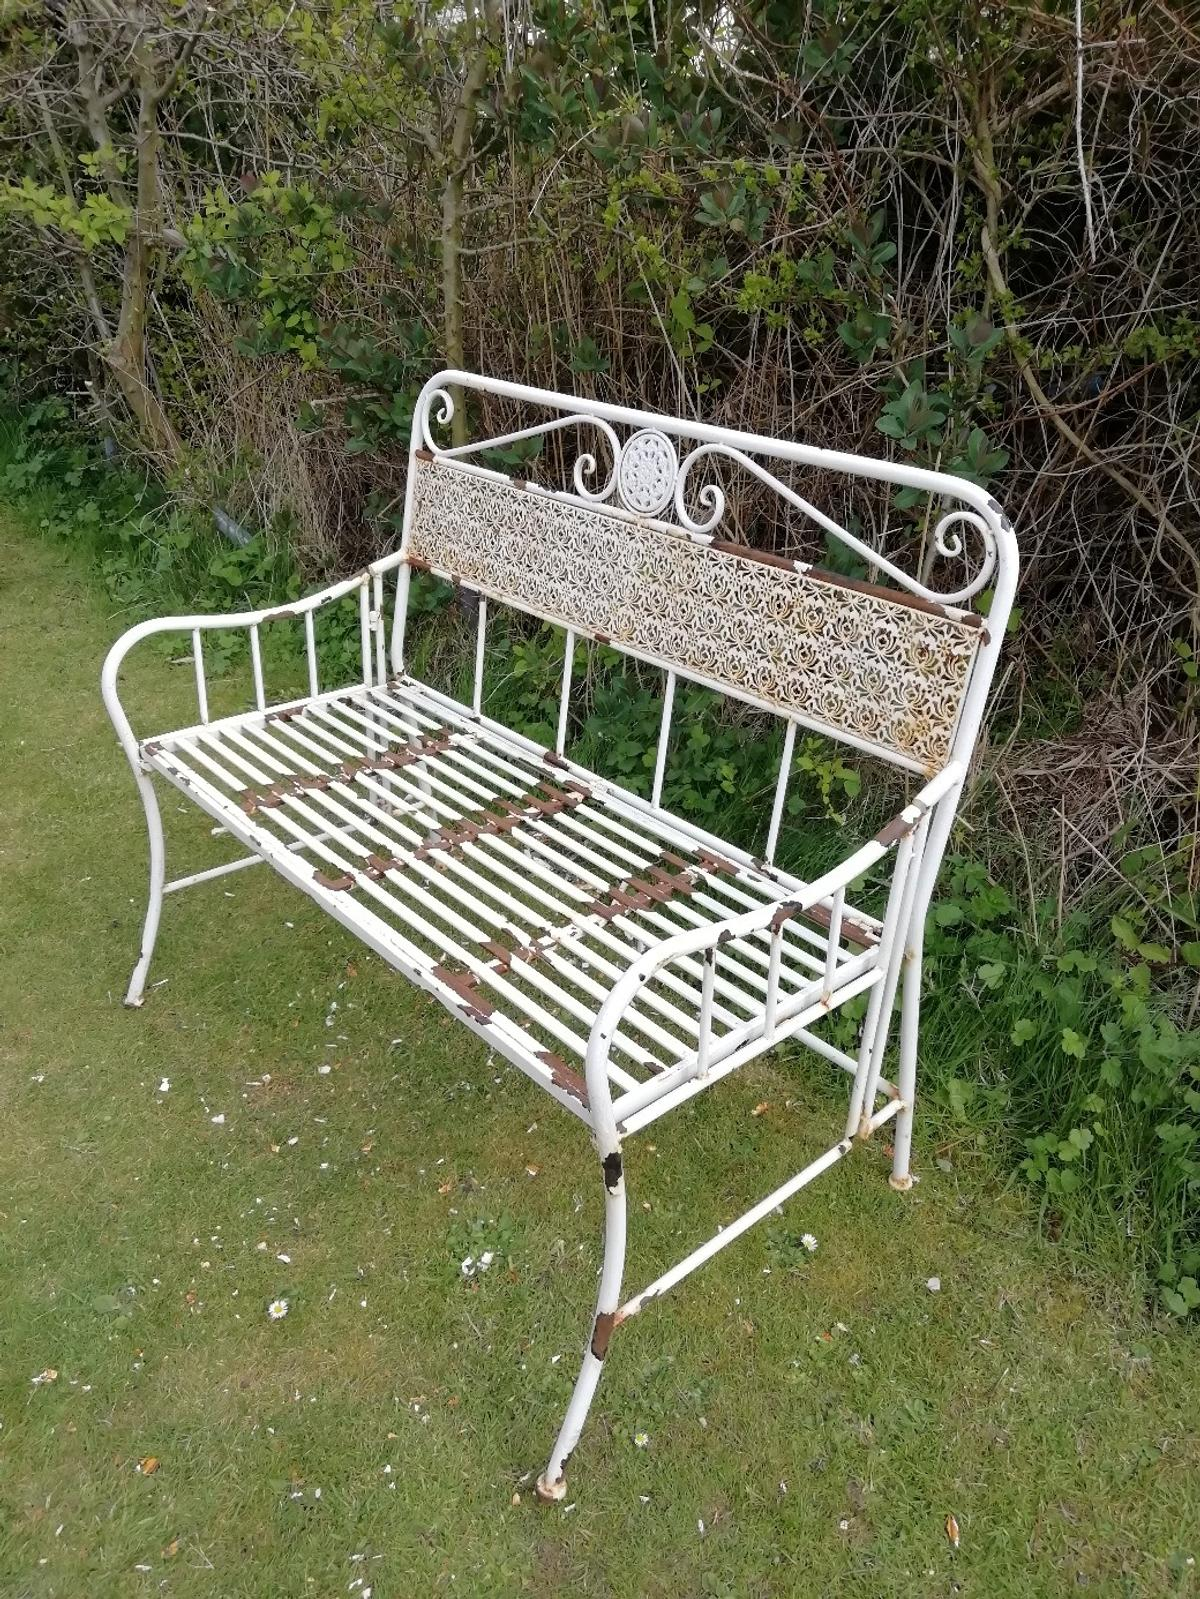 Folding Metal Garden Bench In East Lindsey For £20.00 For ...